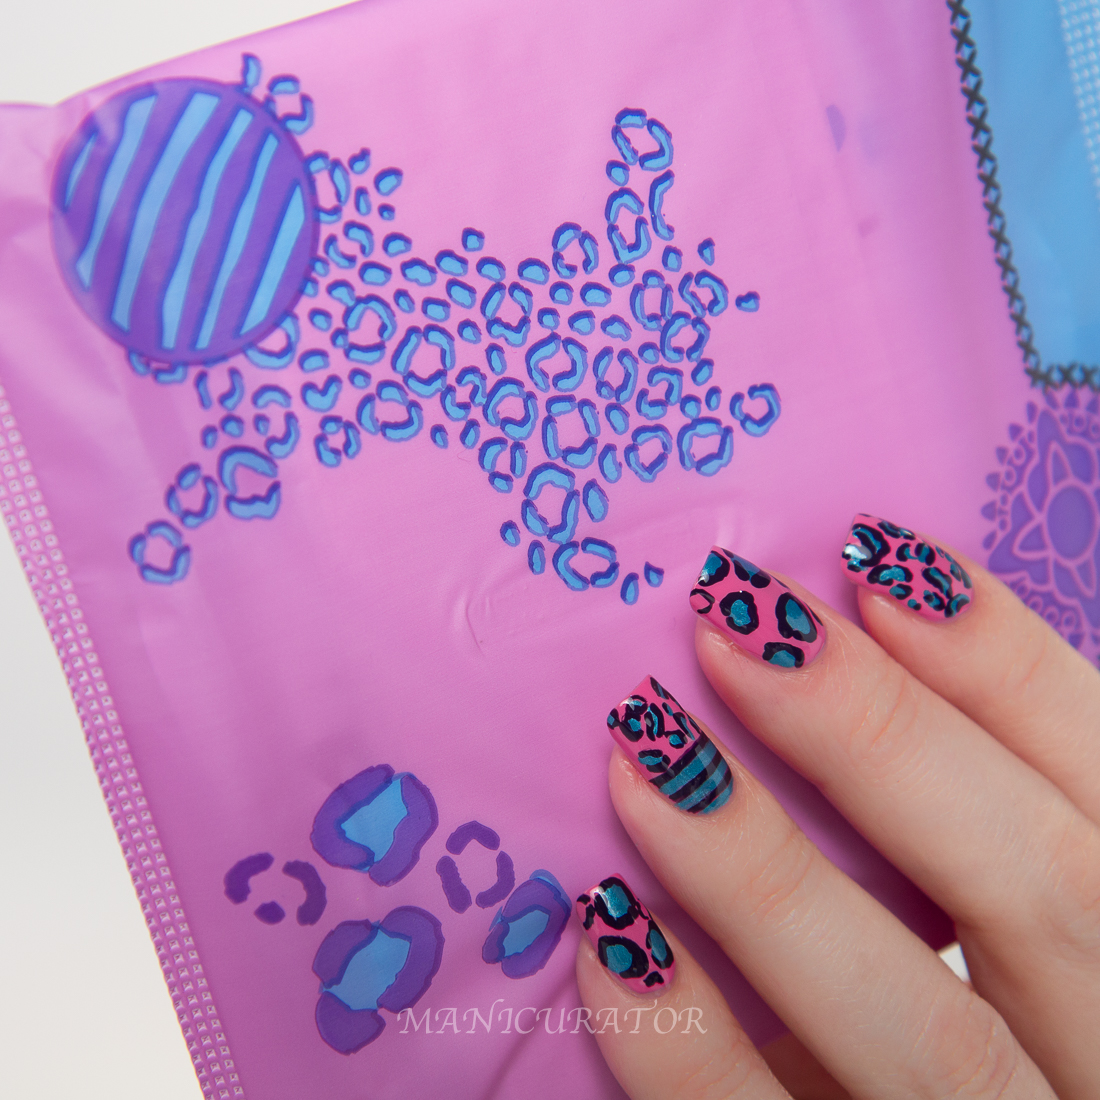 manicurator: U by Kotex 3D Capture Core pads free sample and ...